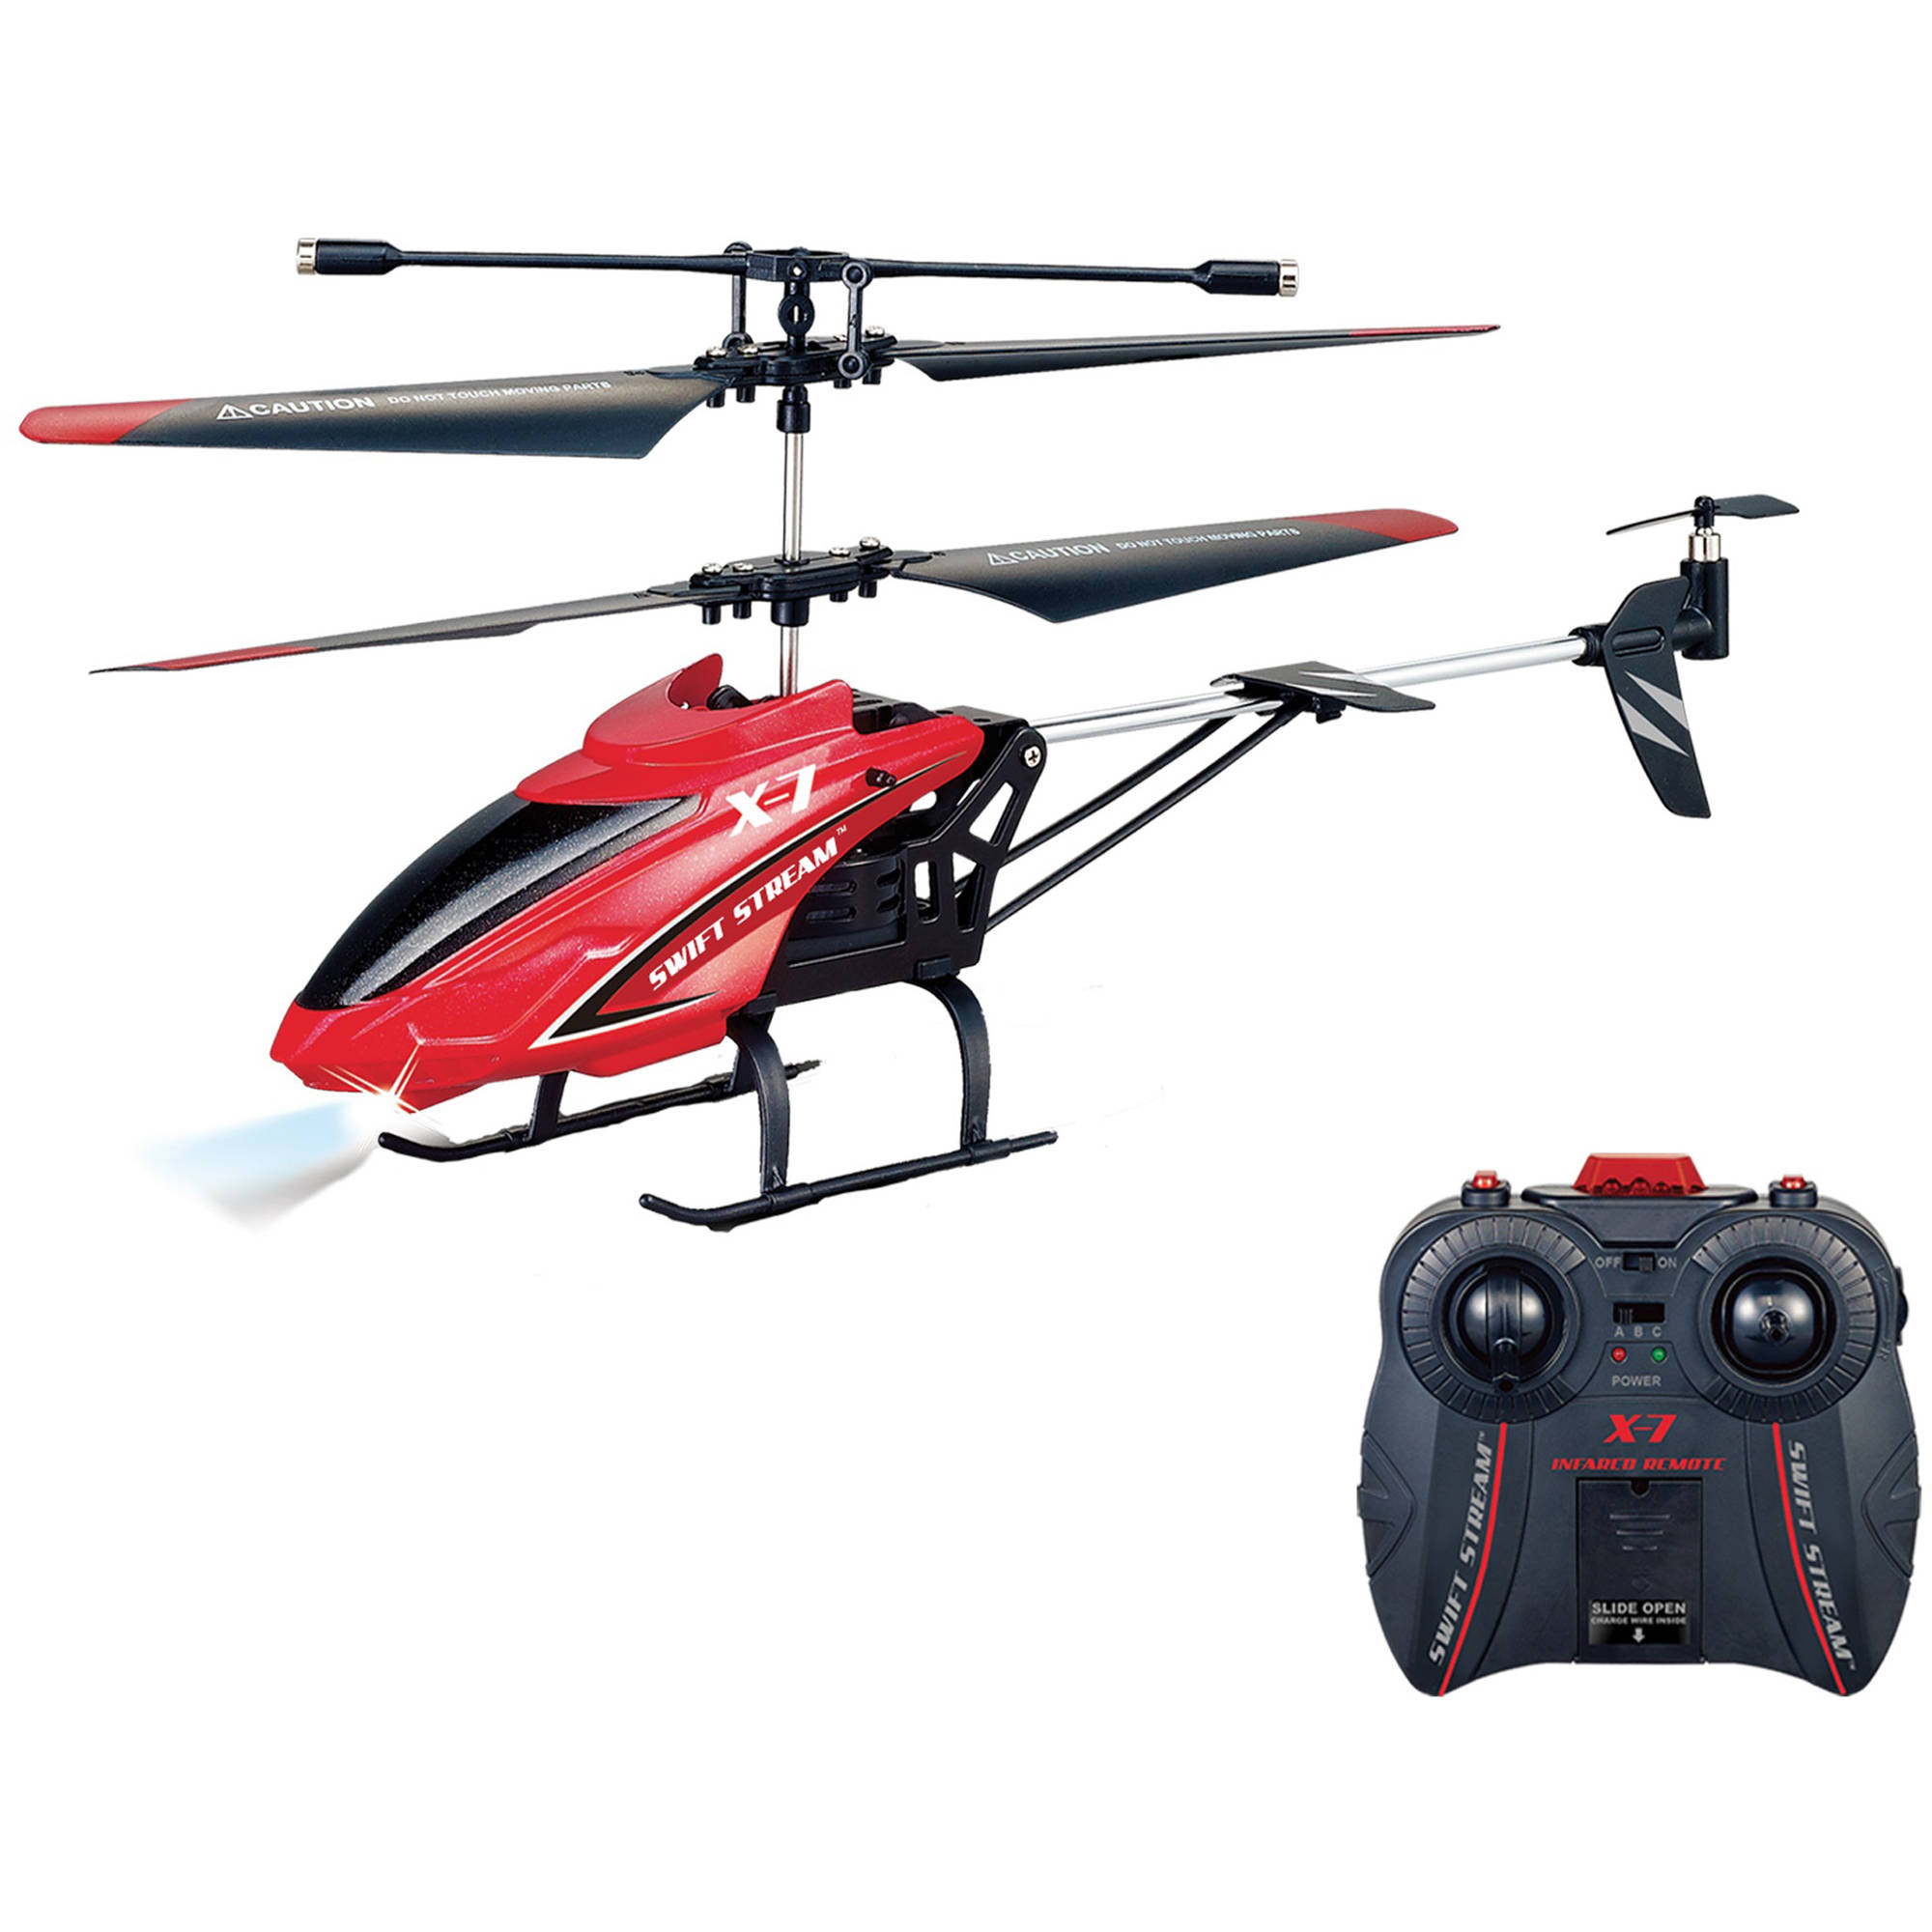 "Swift Stream X-7 Remote Control 9"" Helicopter, Red"